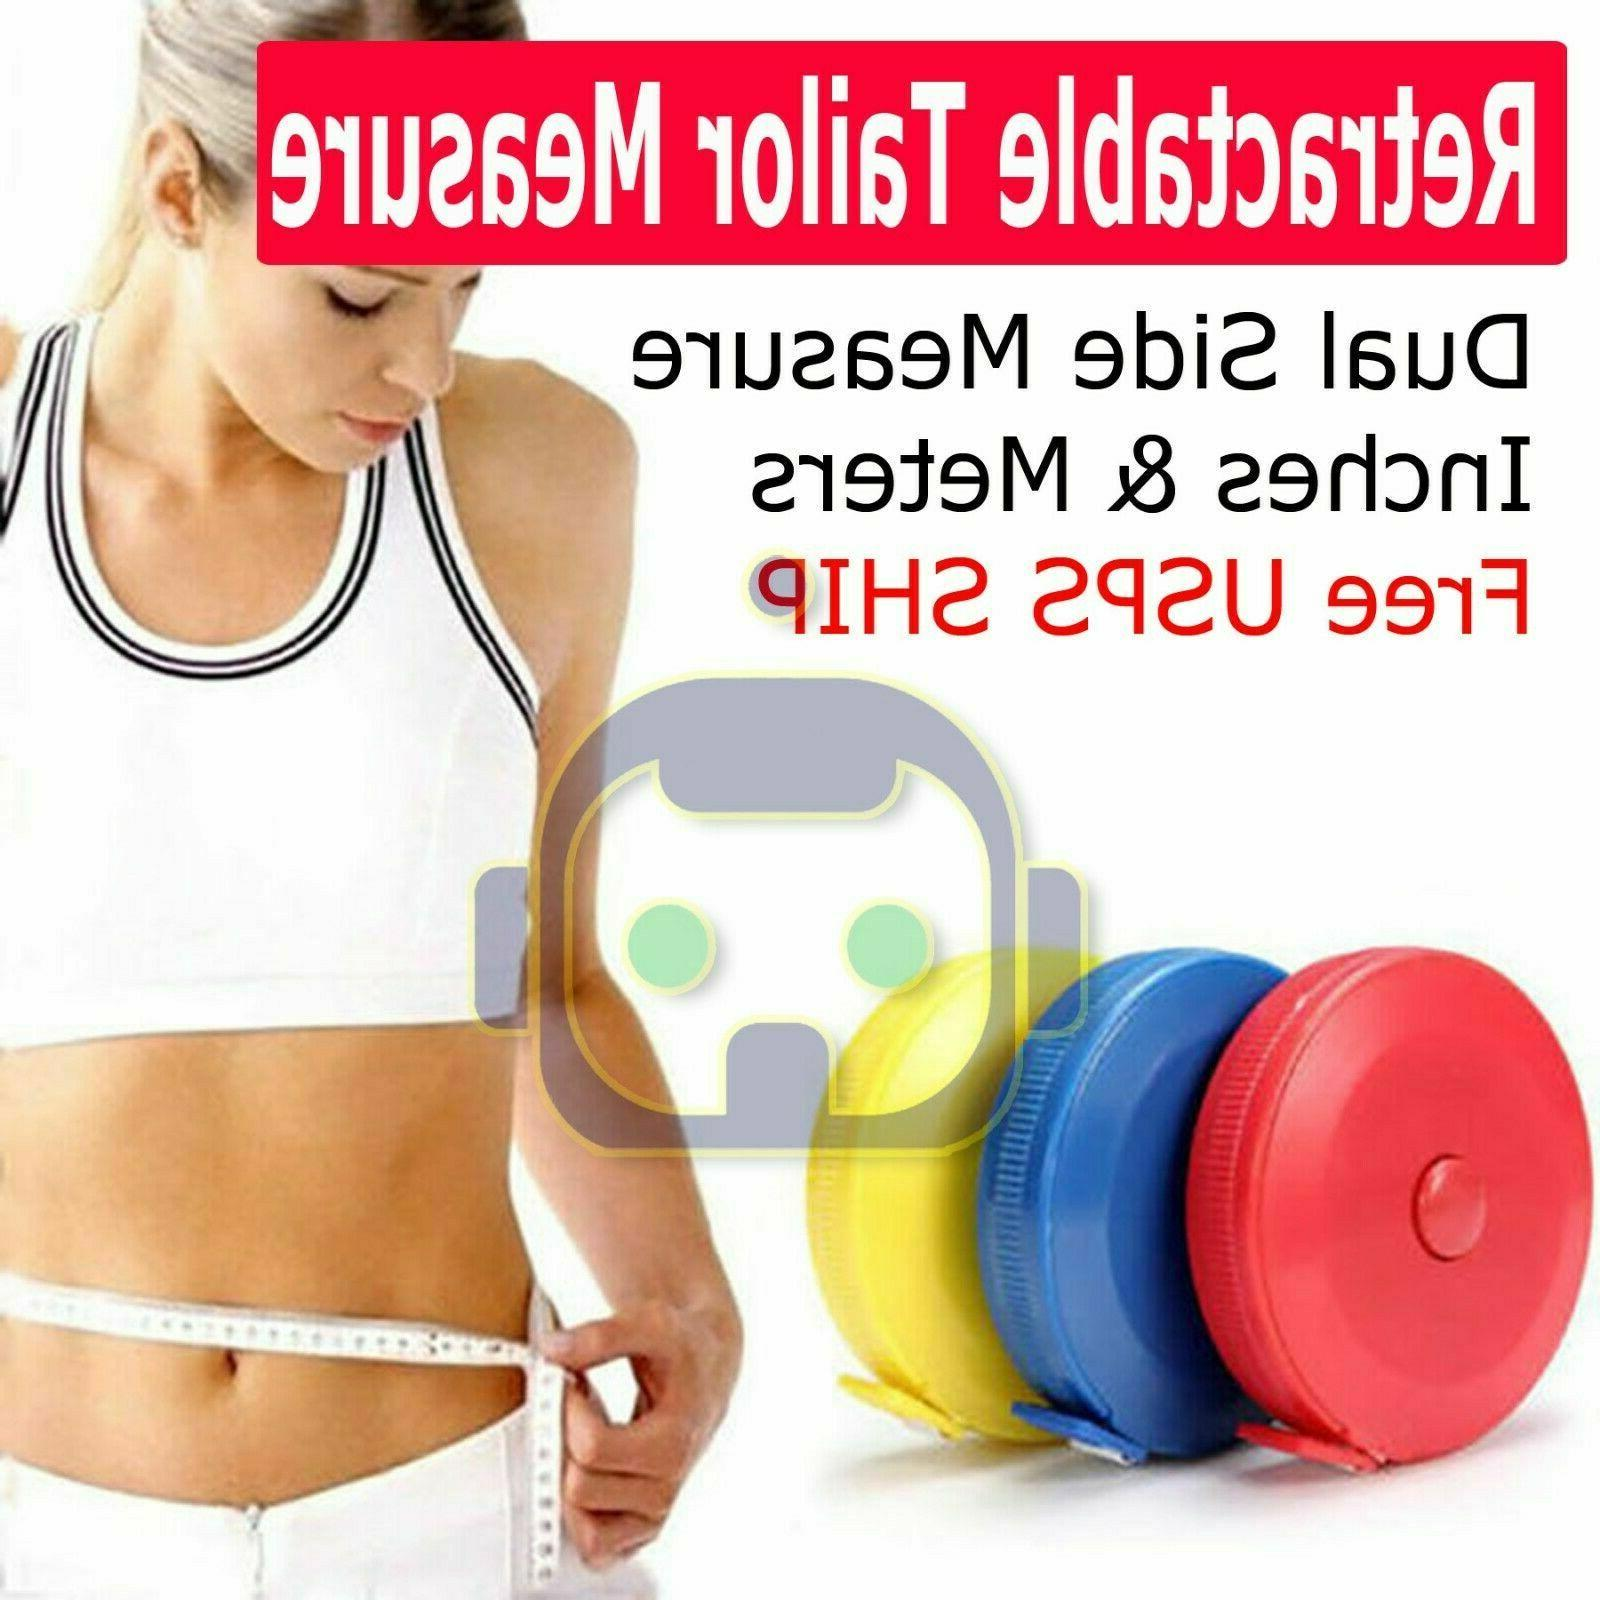 60 body measuring tailor tape ruler sewing